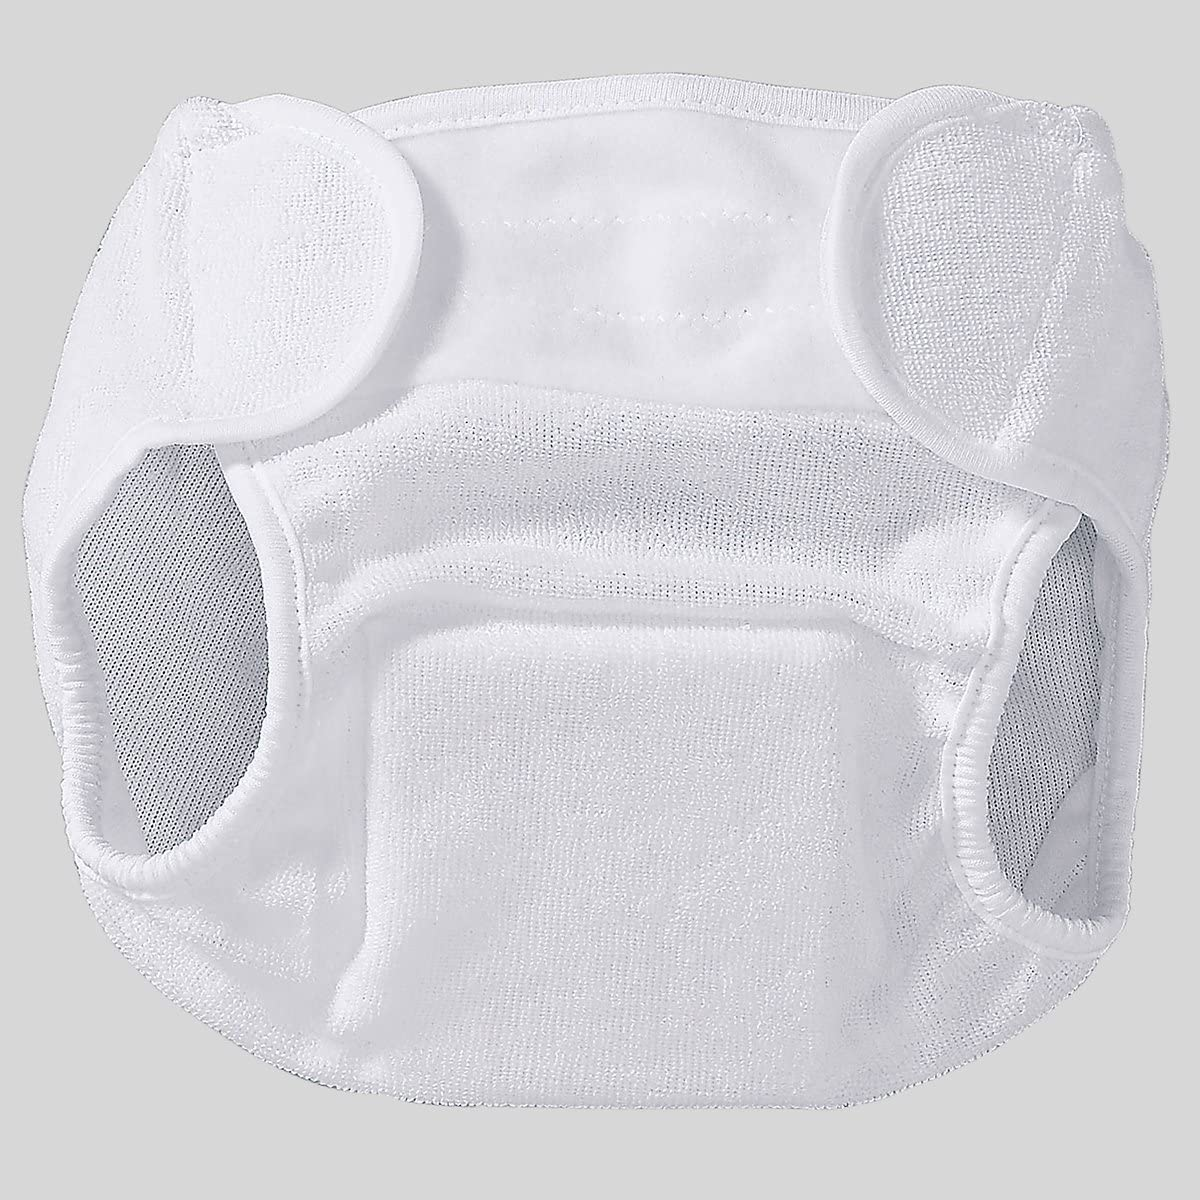 4-6 kg Sunnybaby 26601 Nappy Panties with Spreader Insert Size 1